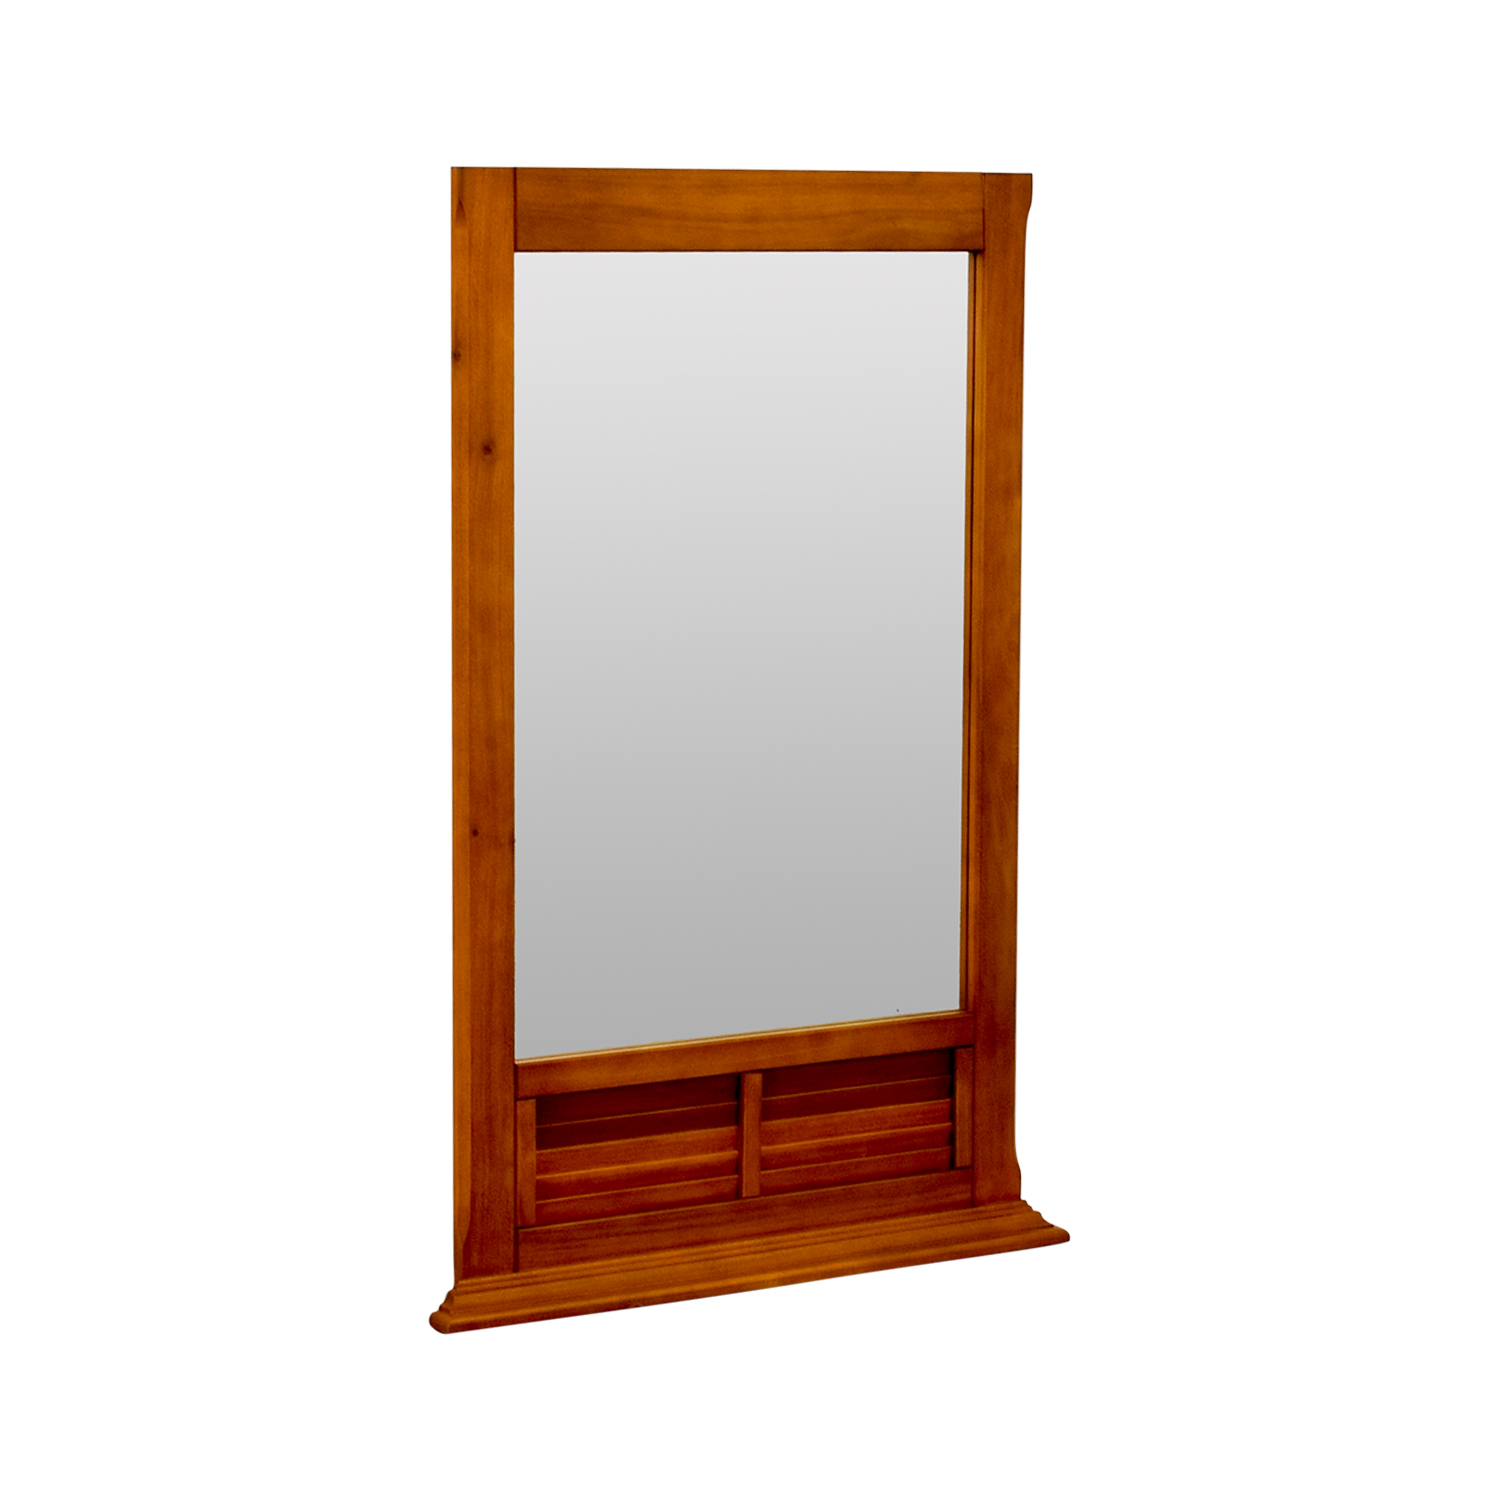 Natural Wood Window Pane Mirror for sale